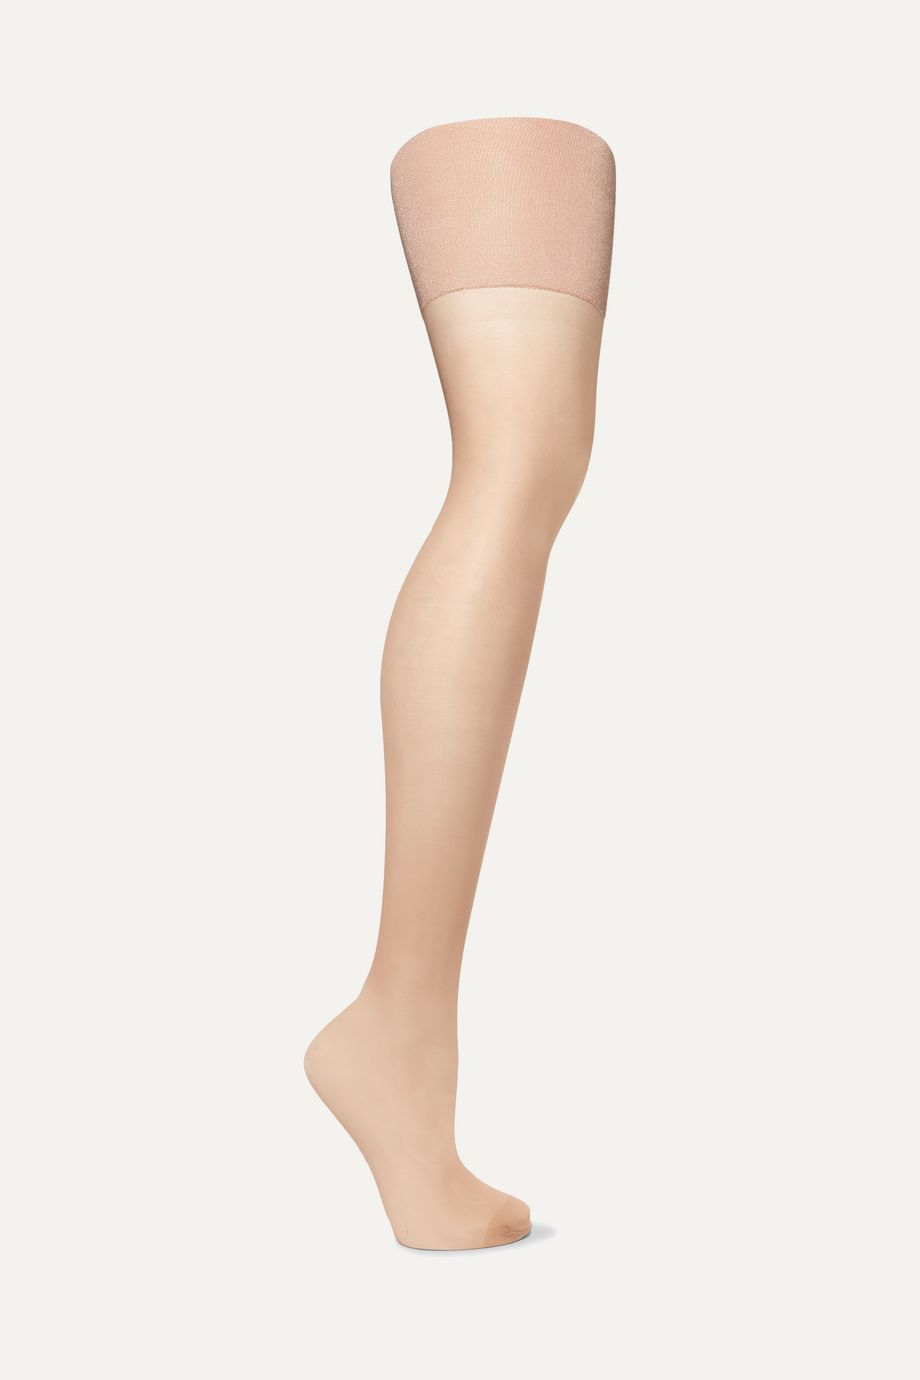 Spanx Firm Believer Sheers high-rise 20 denier shaping tights